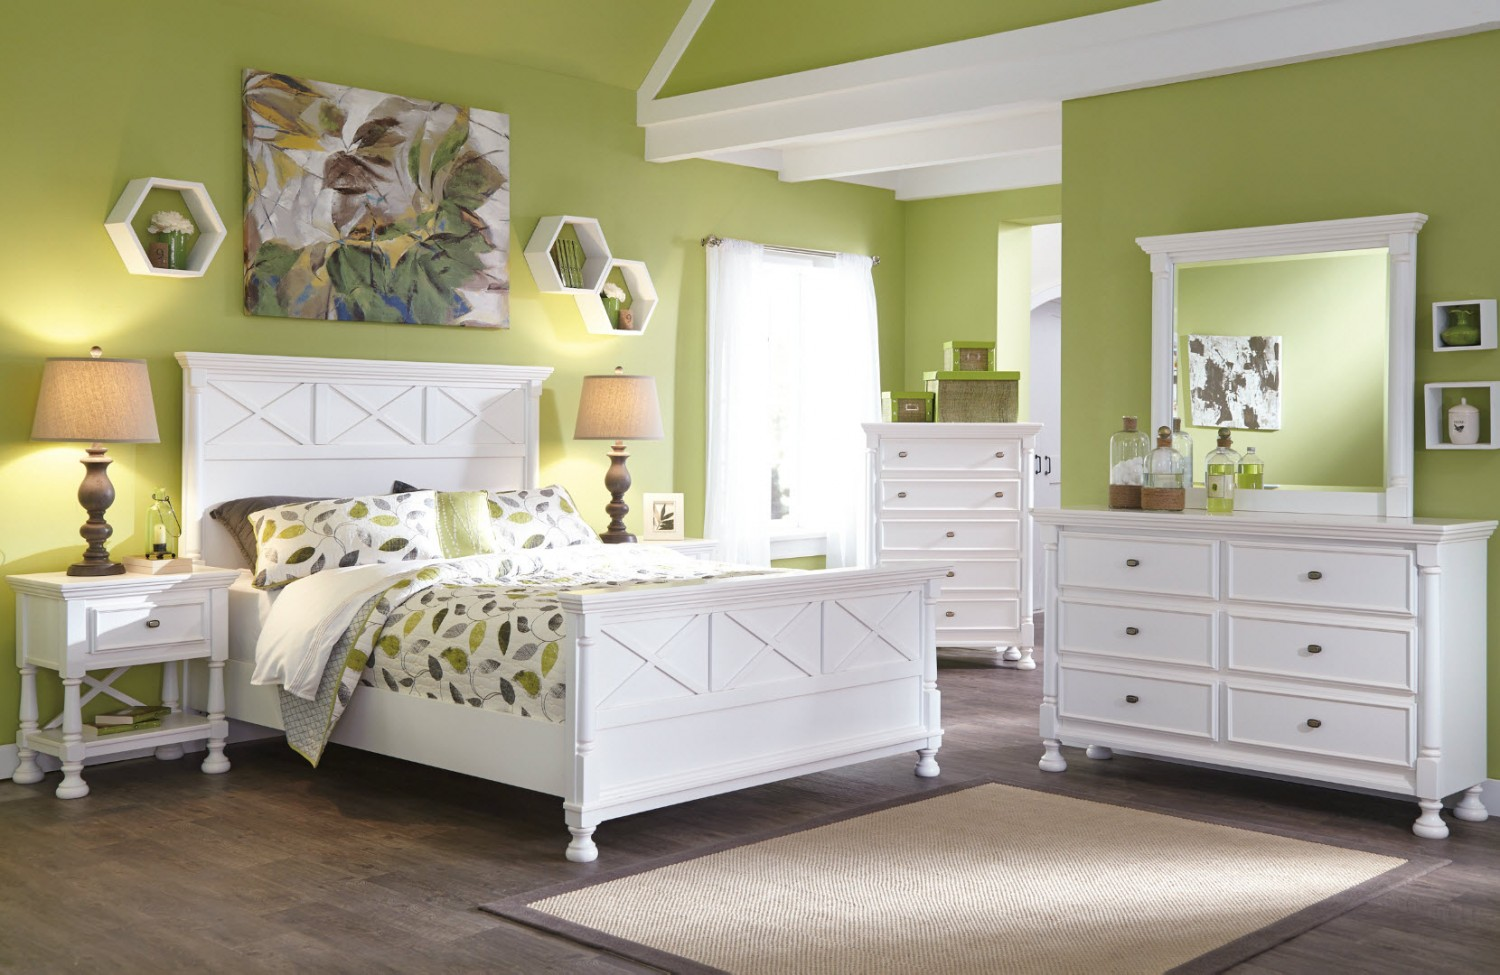 Kids Room Furniture Warehouse : kids rooms accessories summer restyling for your kid s room easy as 1 ...